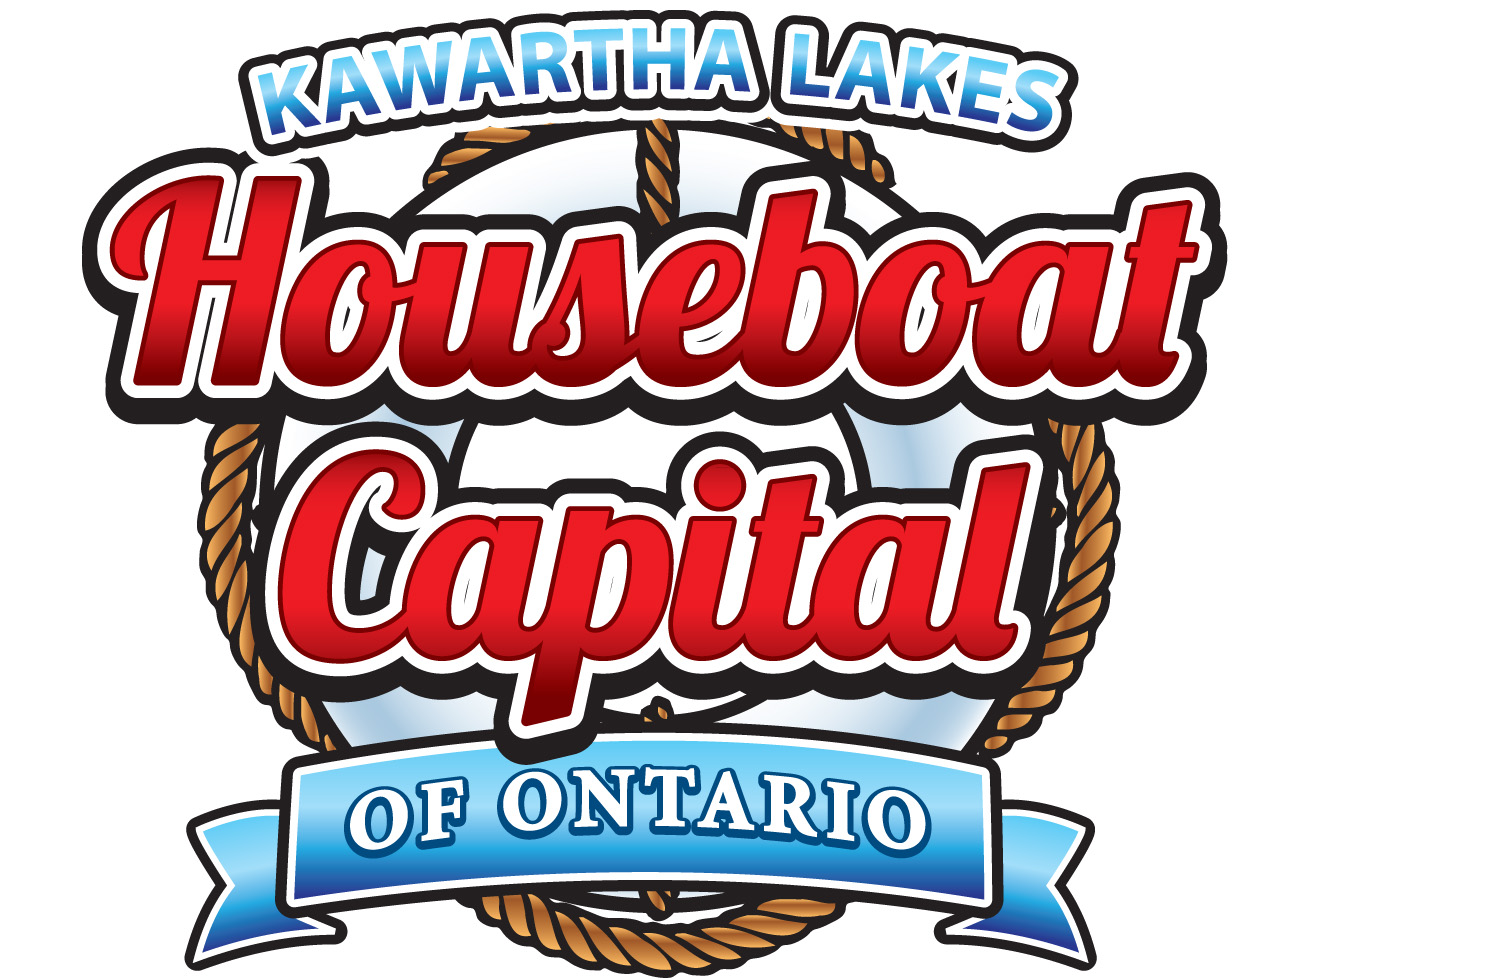 Houseboat Capital of Ontario logo Dec. 4, 2015 #1